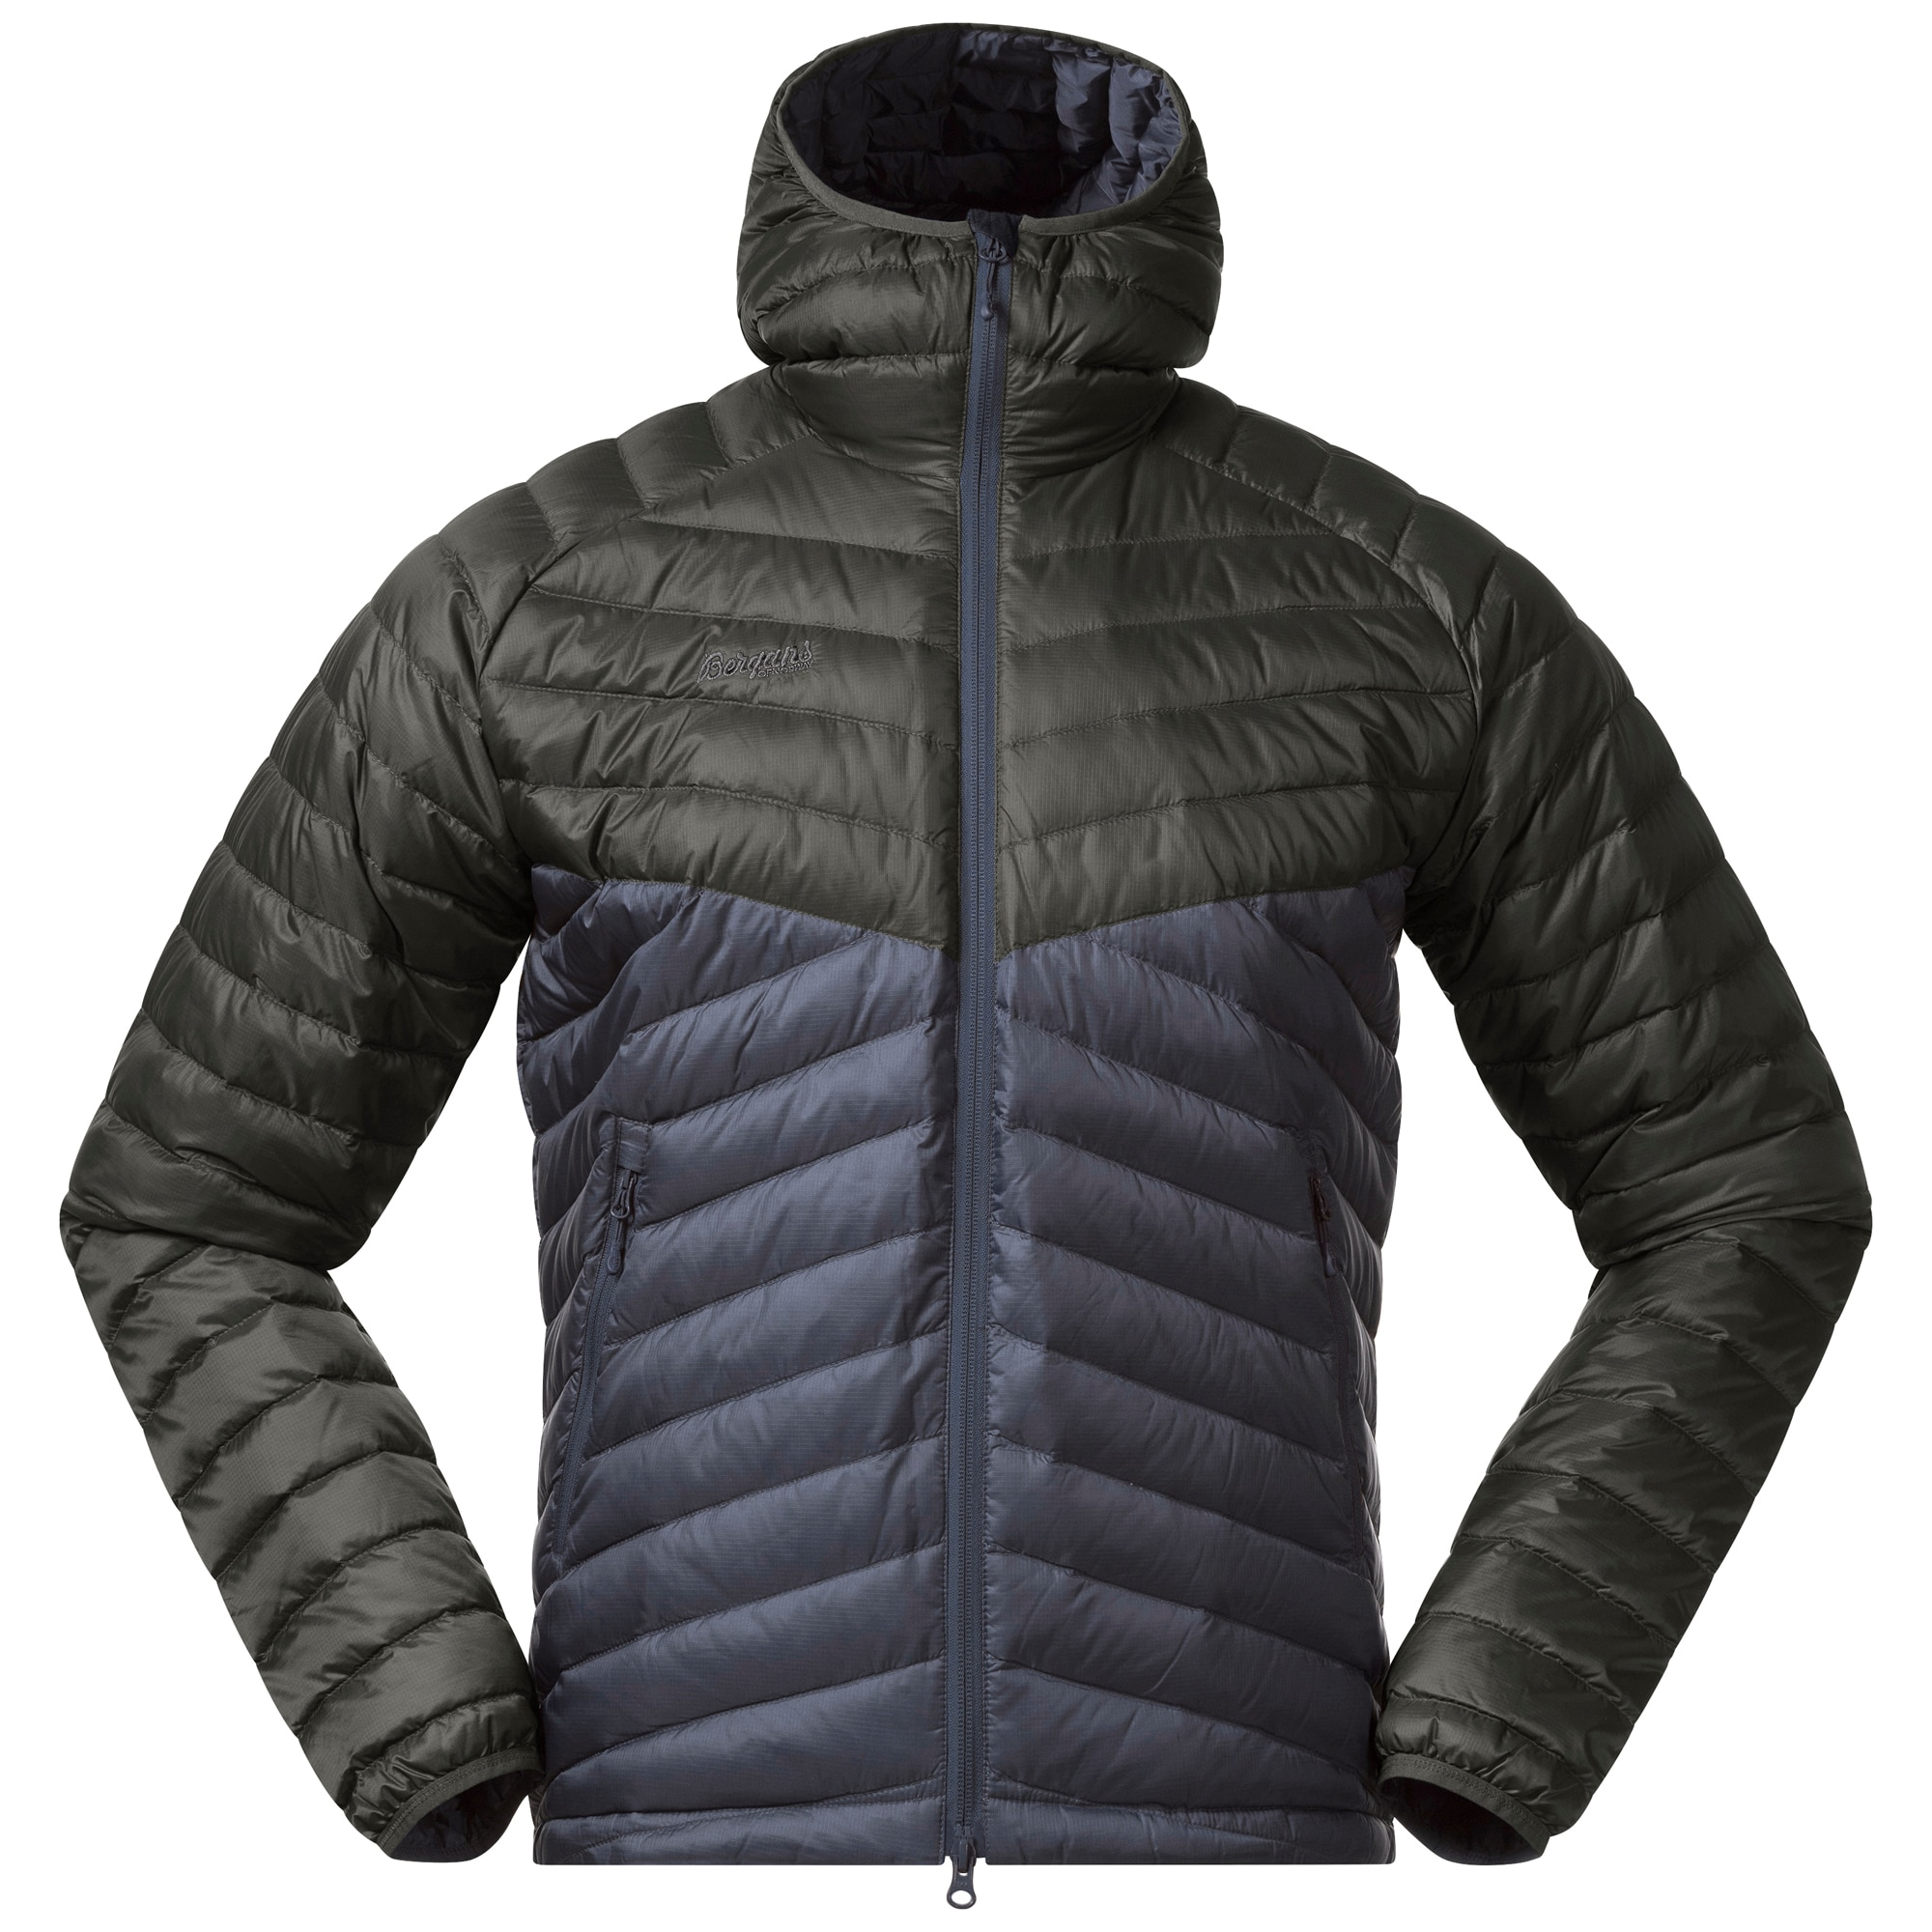 Pyttegga Down Jacket w/Hood